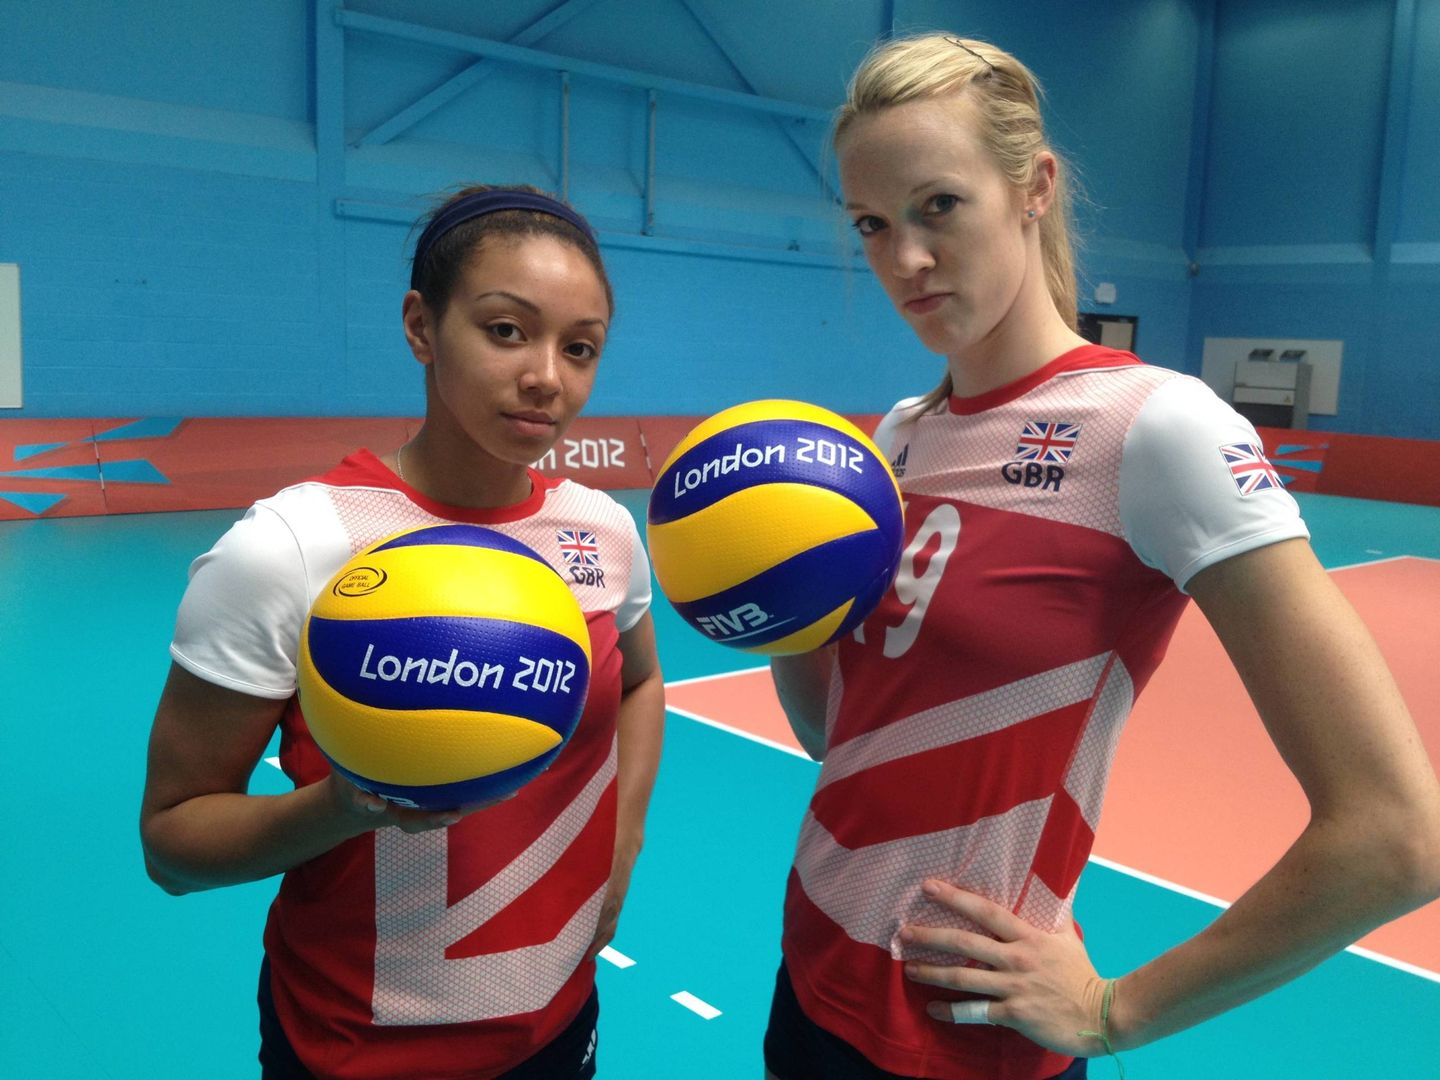 OlympicCanes Blog: Ciara Michel to Olympic Village